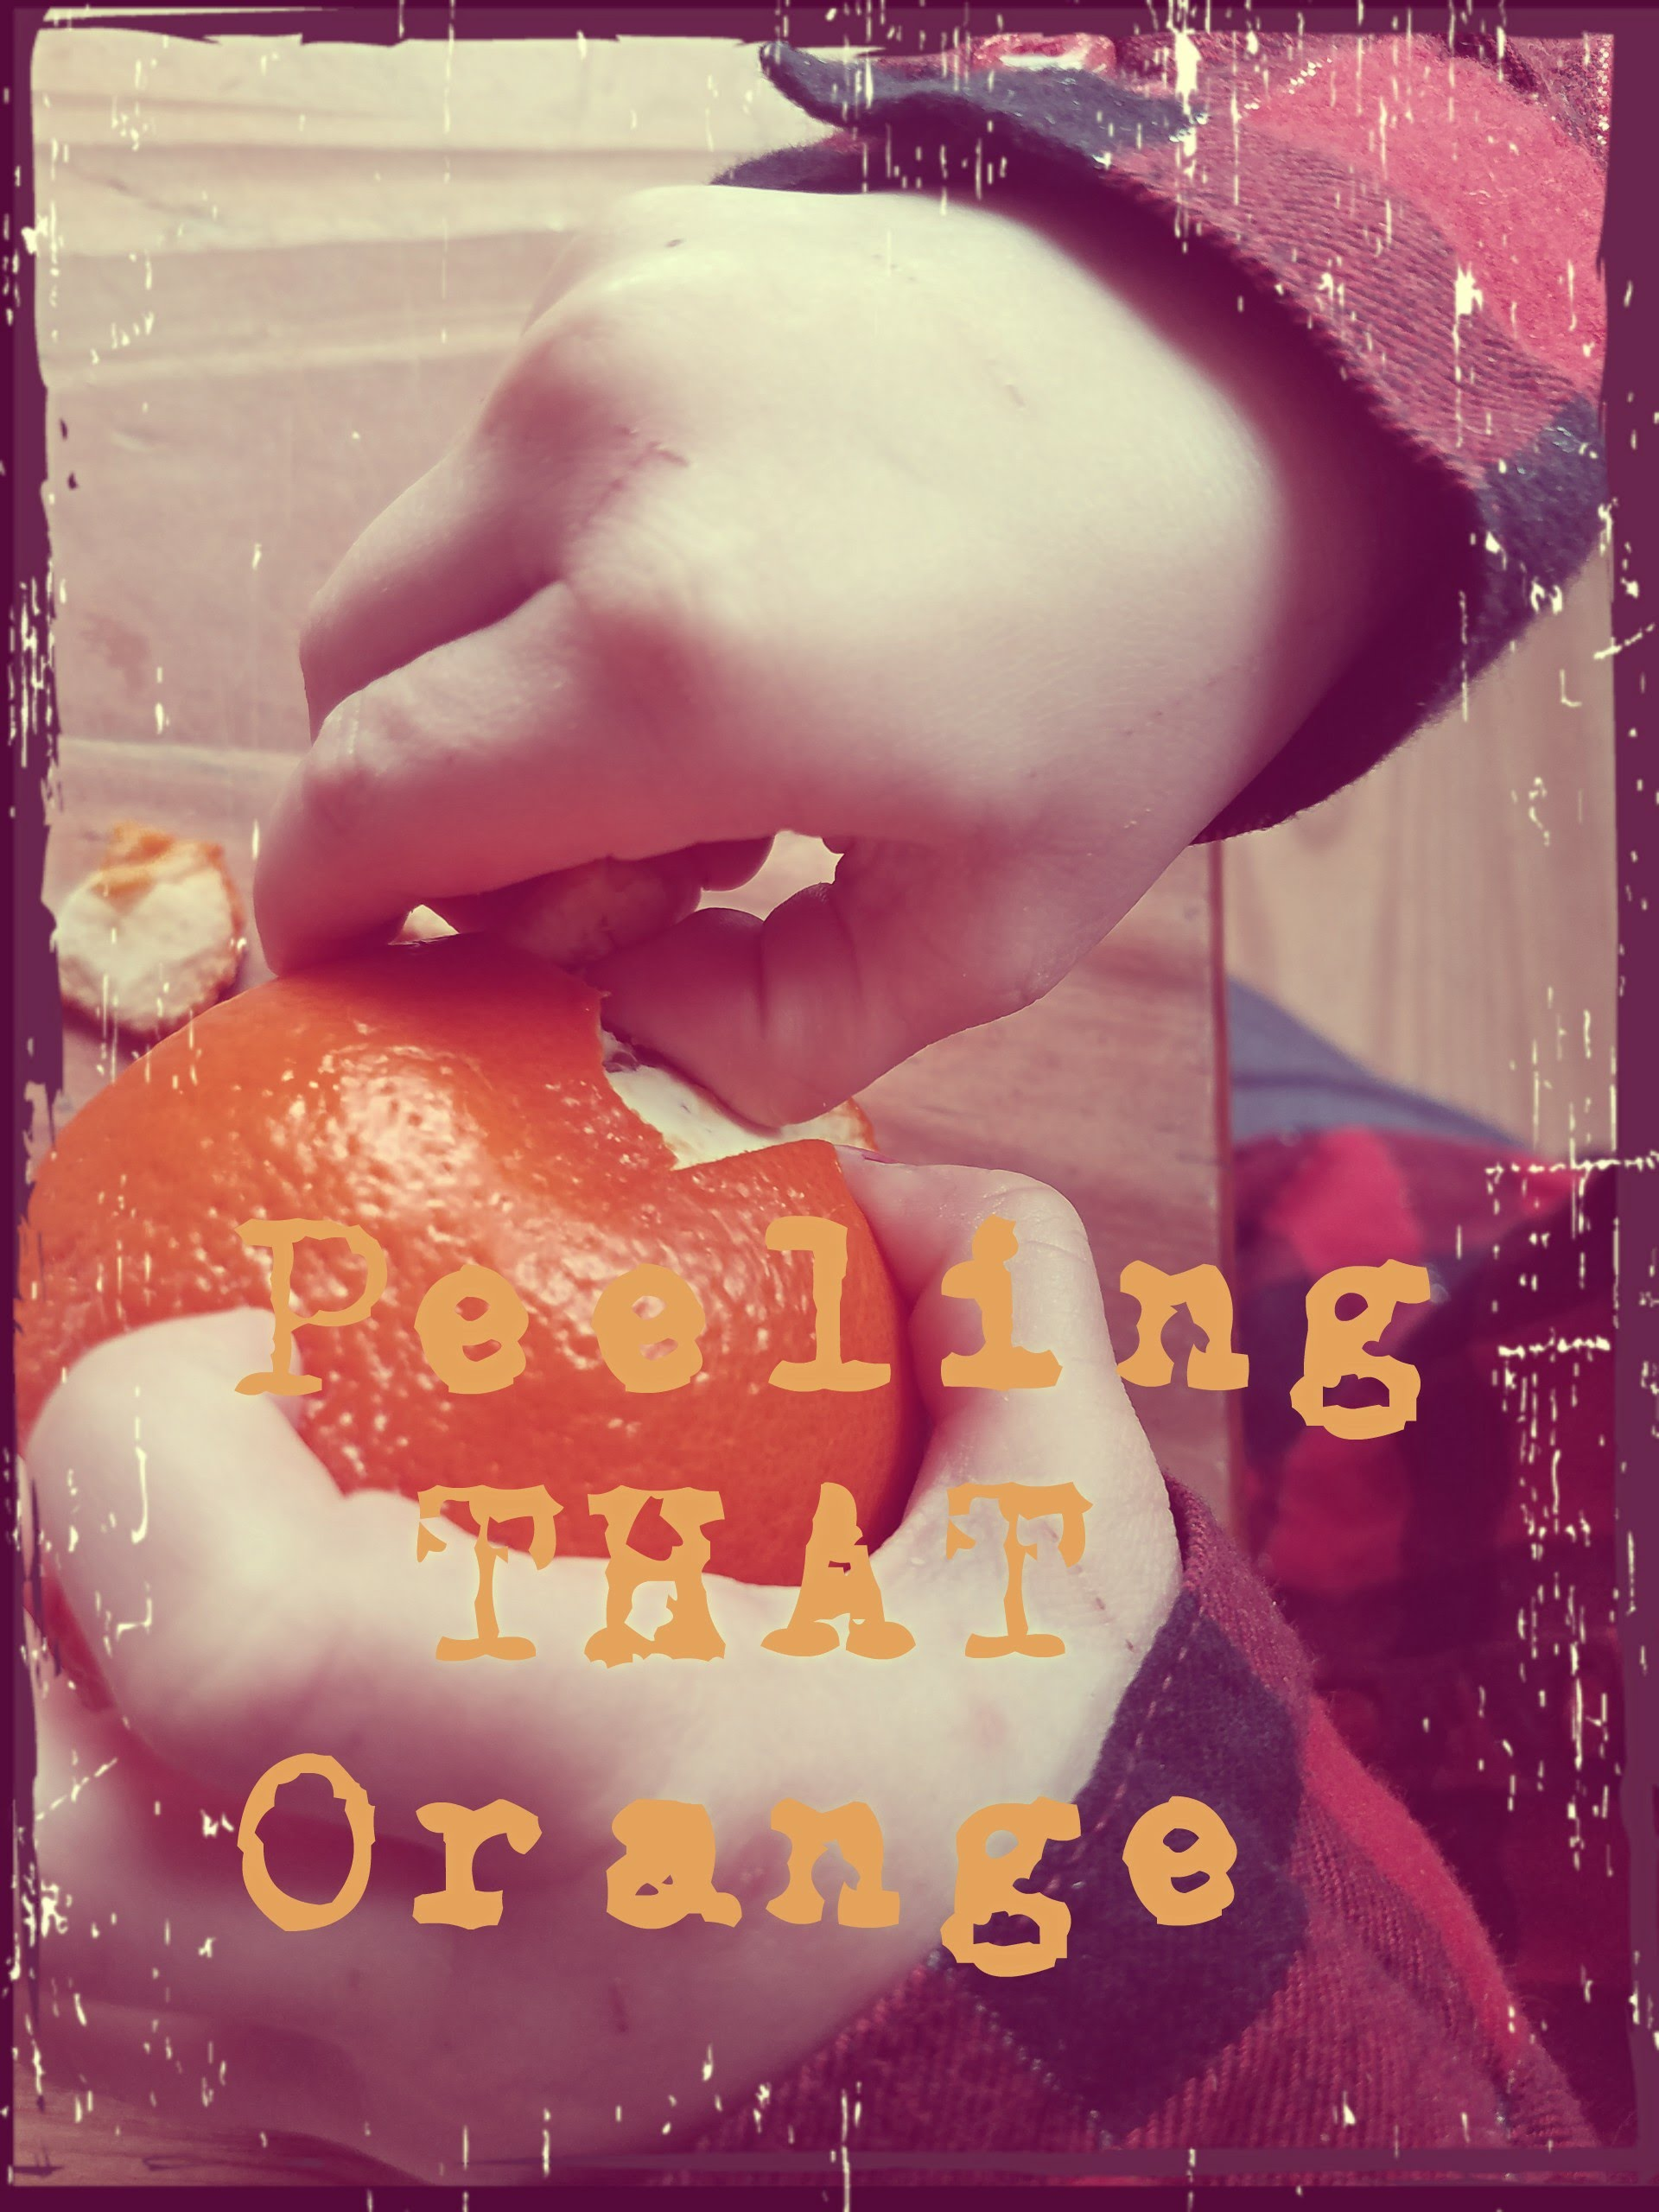 Peeling That Orange